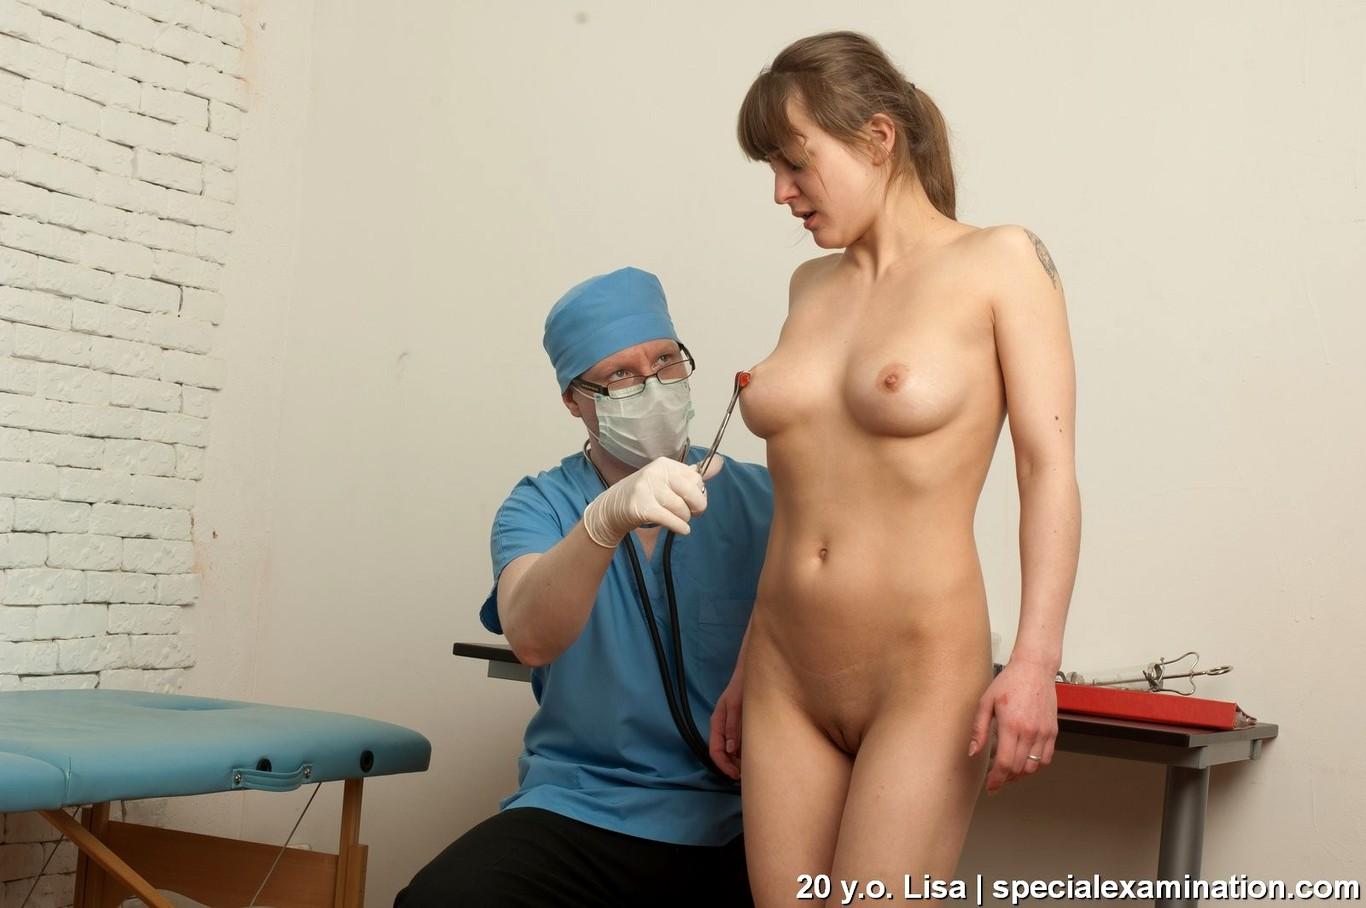 doctor-nud-girls-hot-bikini-bitch-breasts-protruding-pussy-revealed